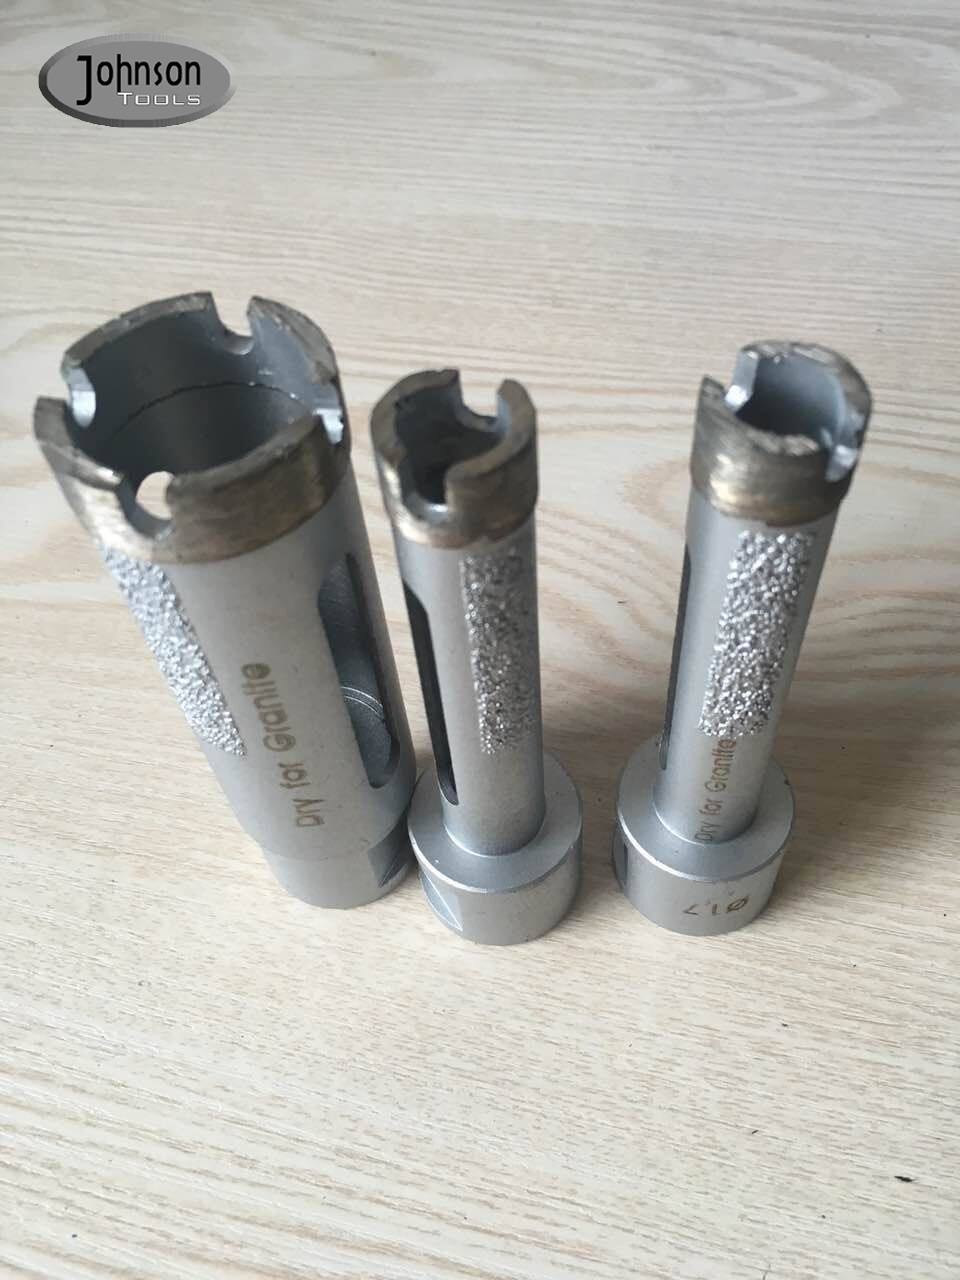 6mm,8mm,10mm-100mm Diamond Dry Core Drills Bits for Granite,Quartz, and Marble